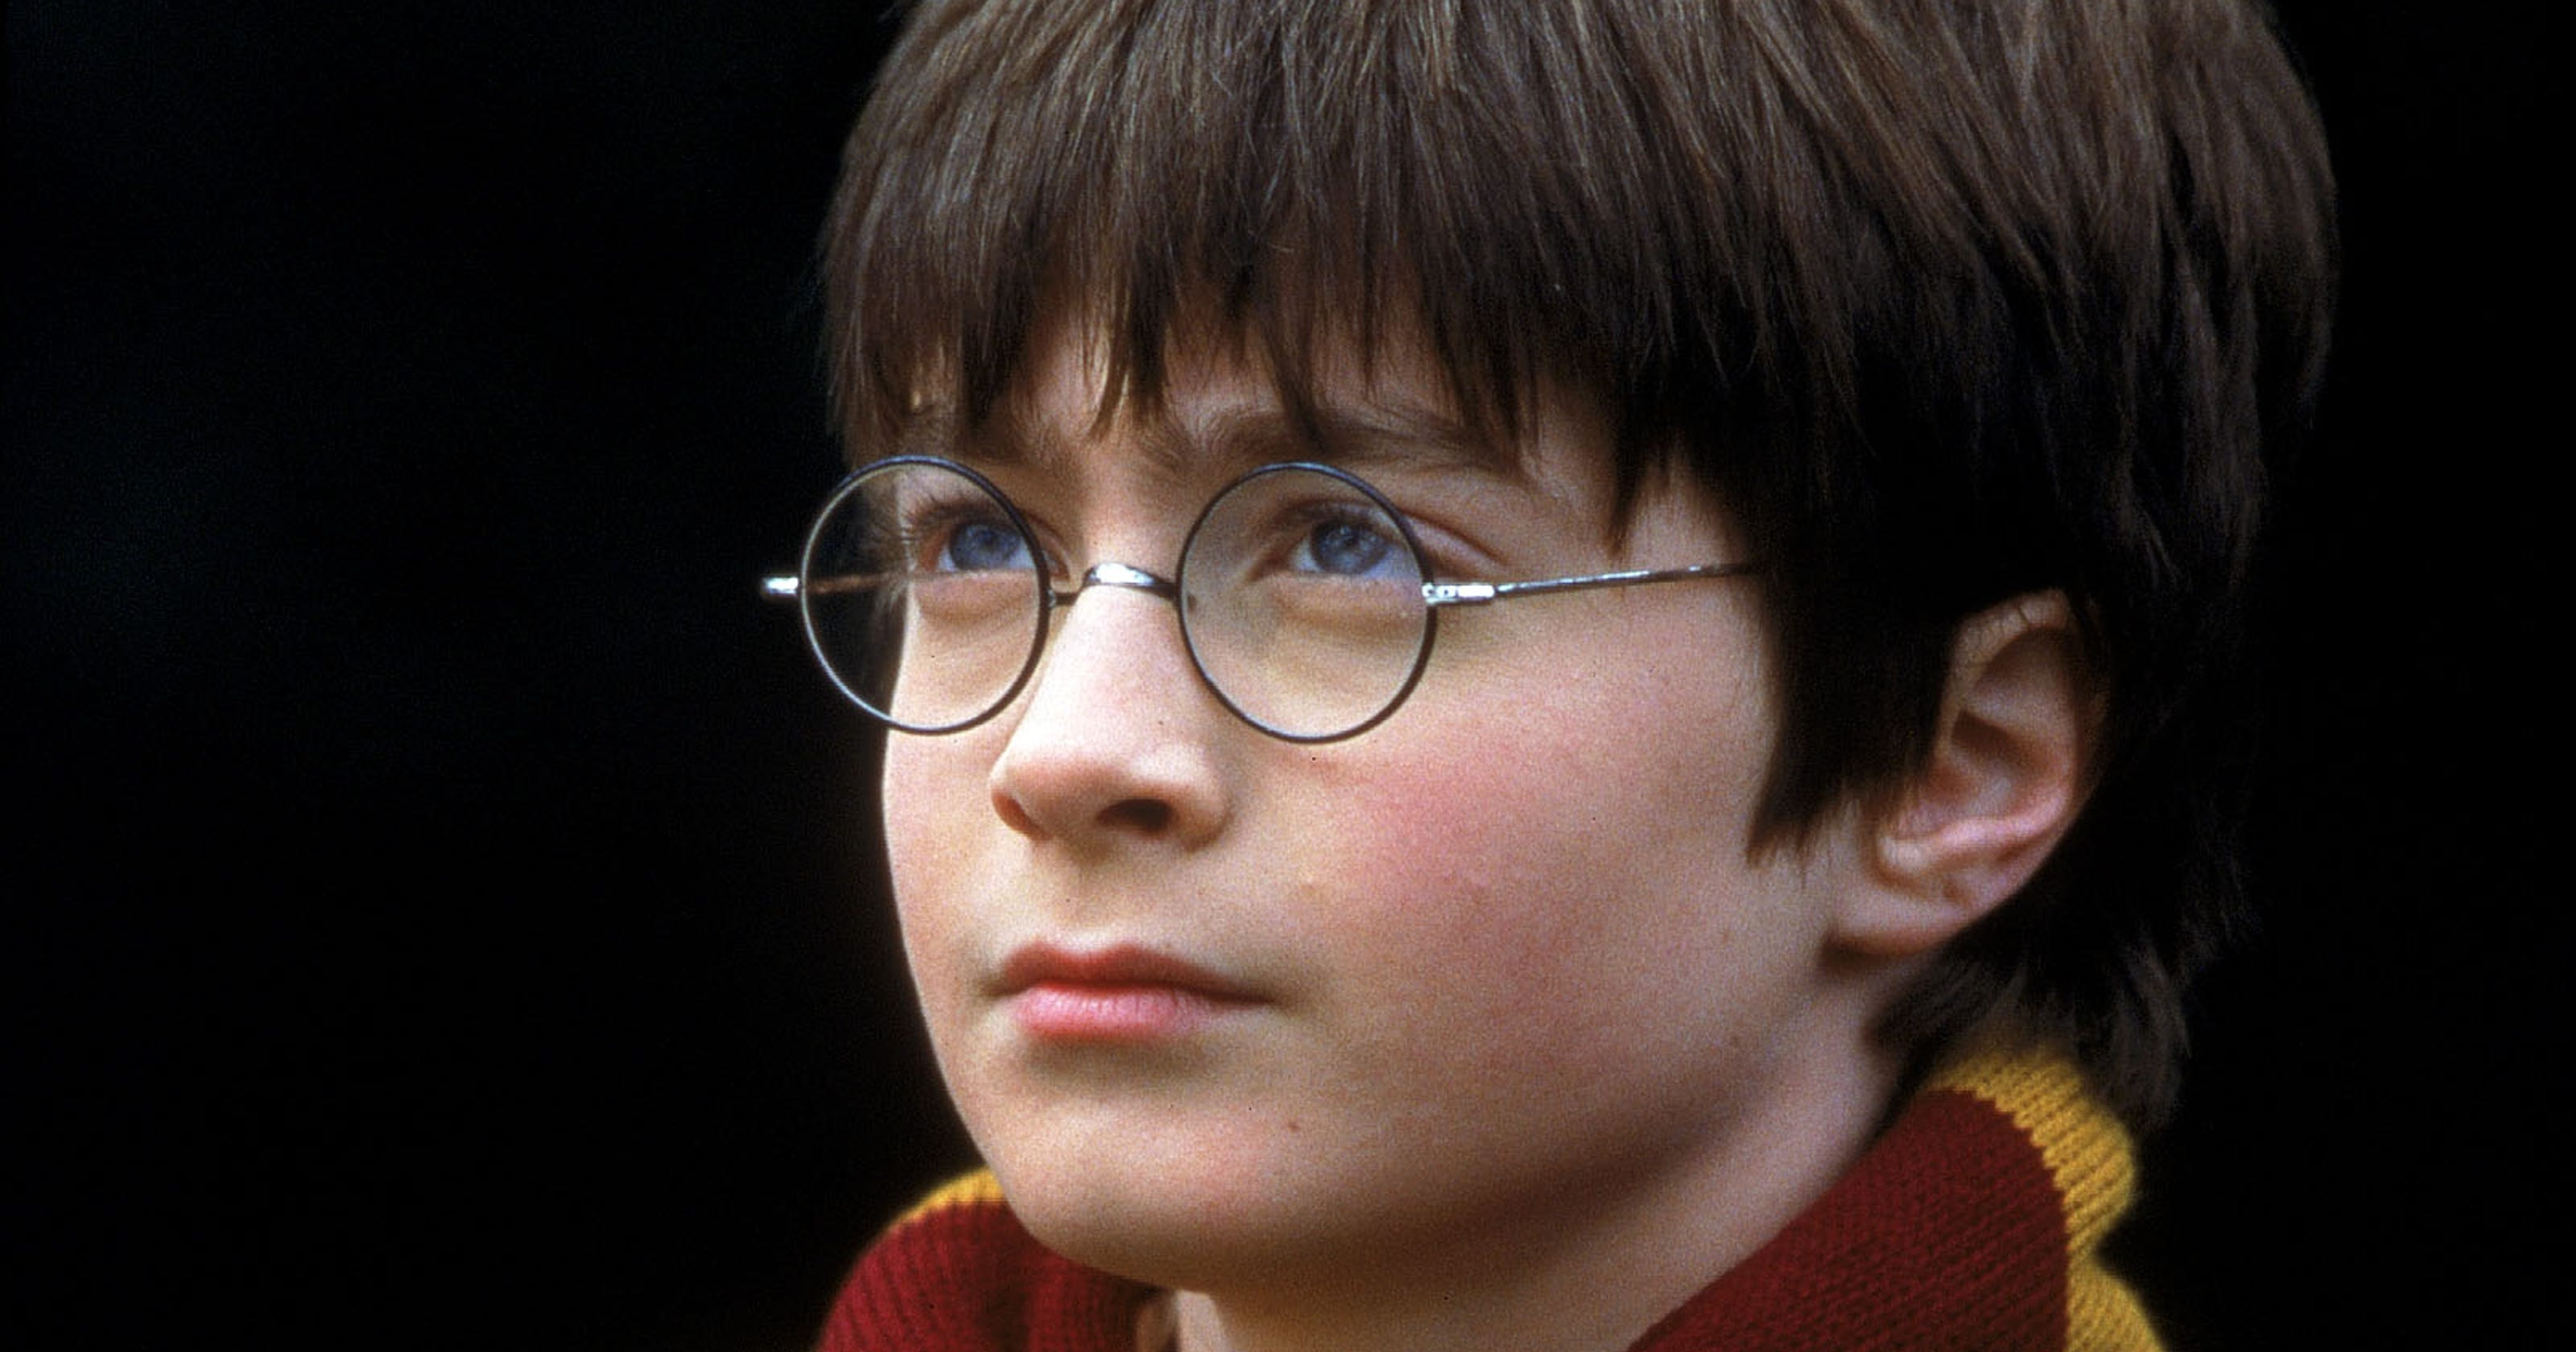 Harry Potter turns 20: This is how Facebook is celebrating